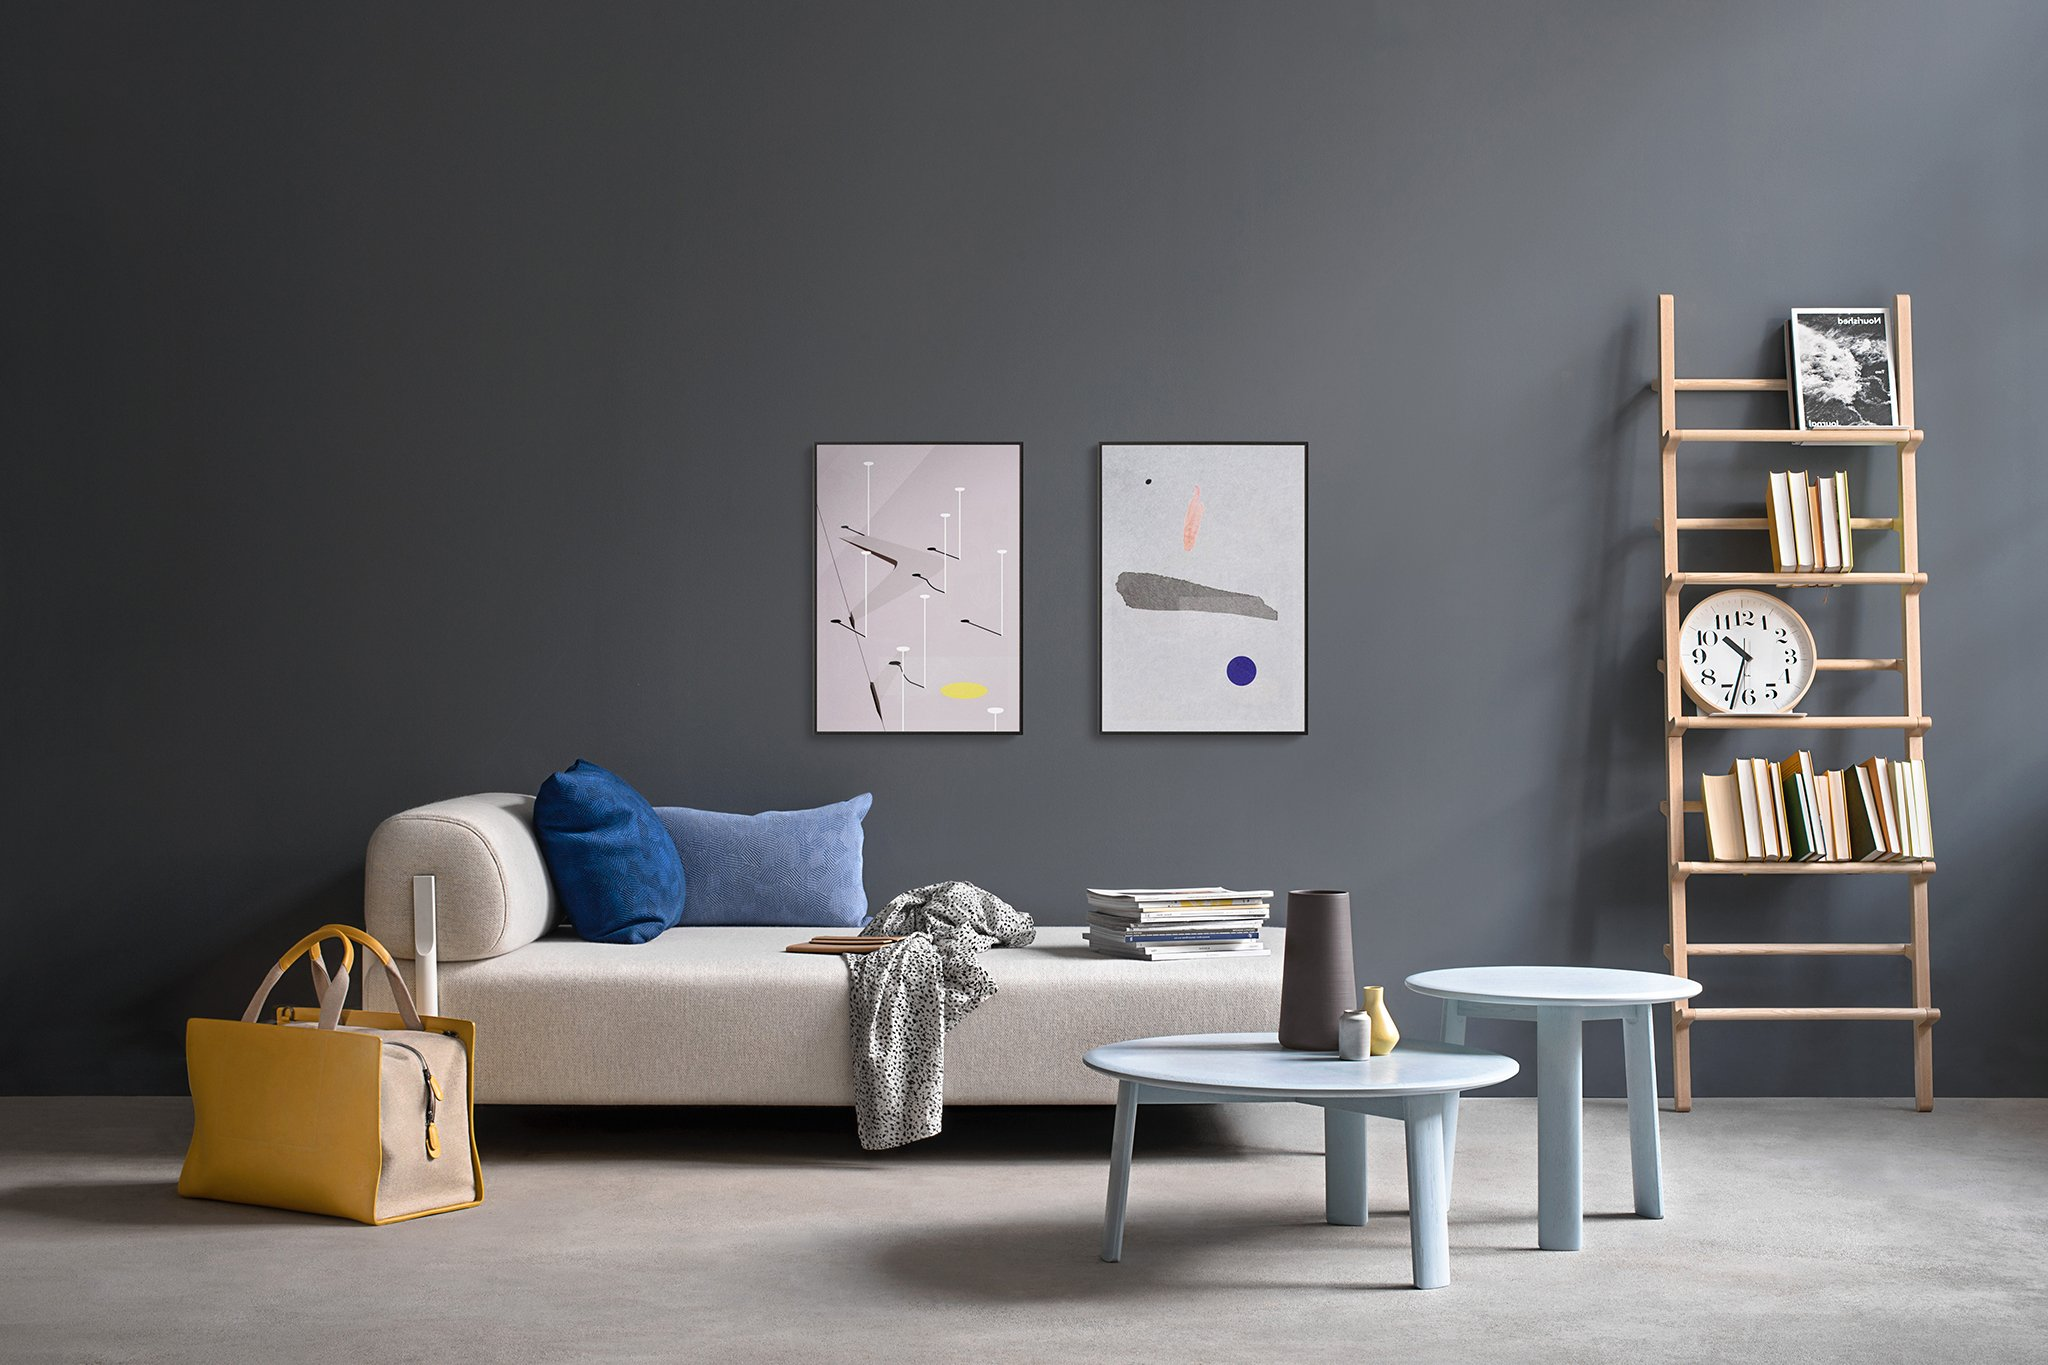 A living room scene featuring a cream-colored couch, two light-blue coffee tables, a ladder shelf holding books, a clock, and a picture, and a yellow weekender bag on the floor off to the side.